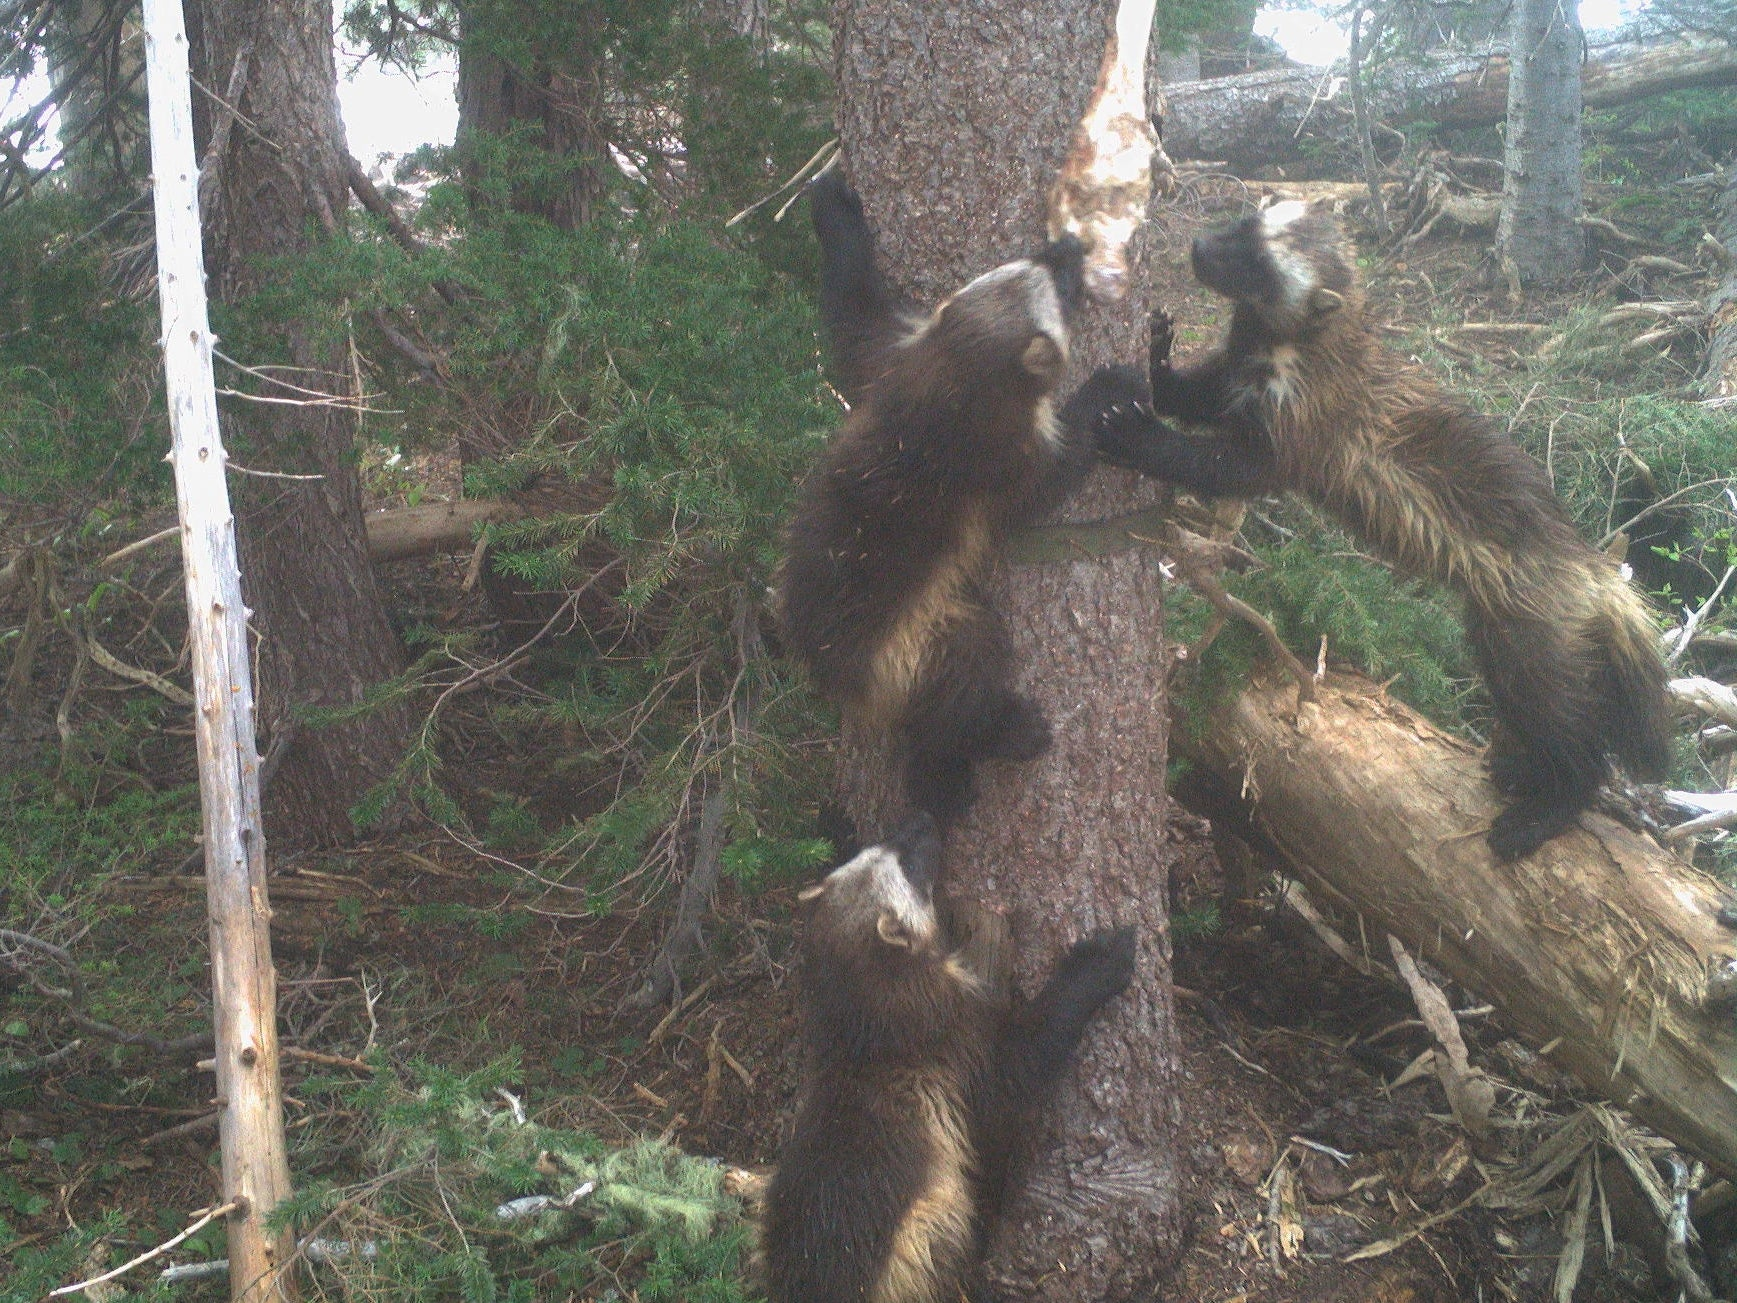 A mother wolverine and her kits ascend a tree.